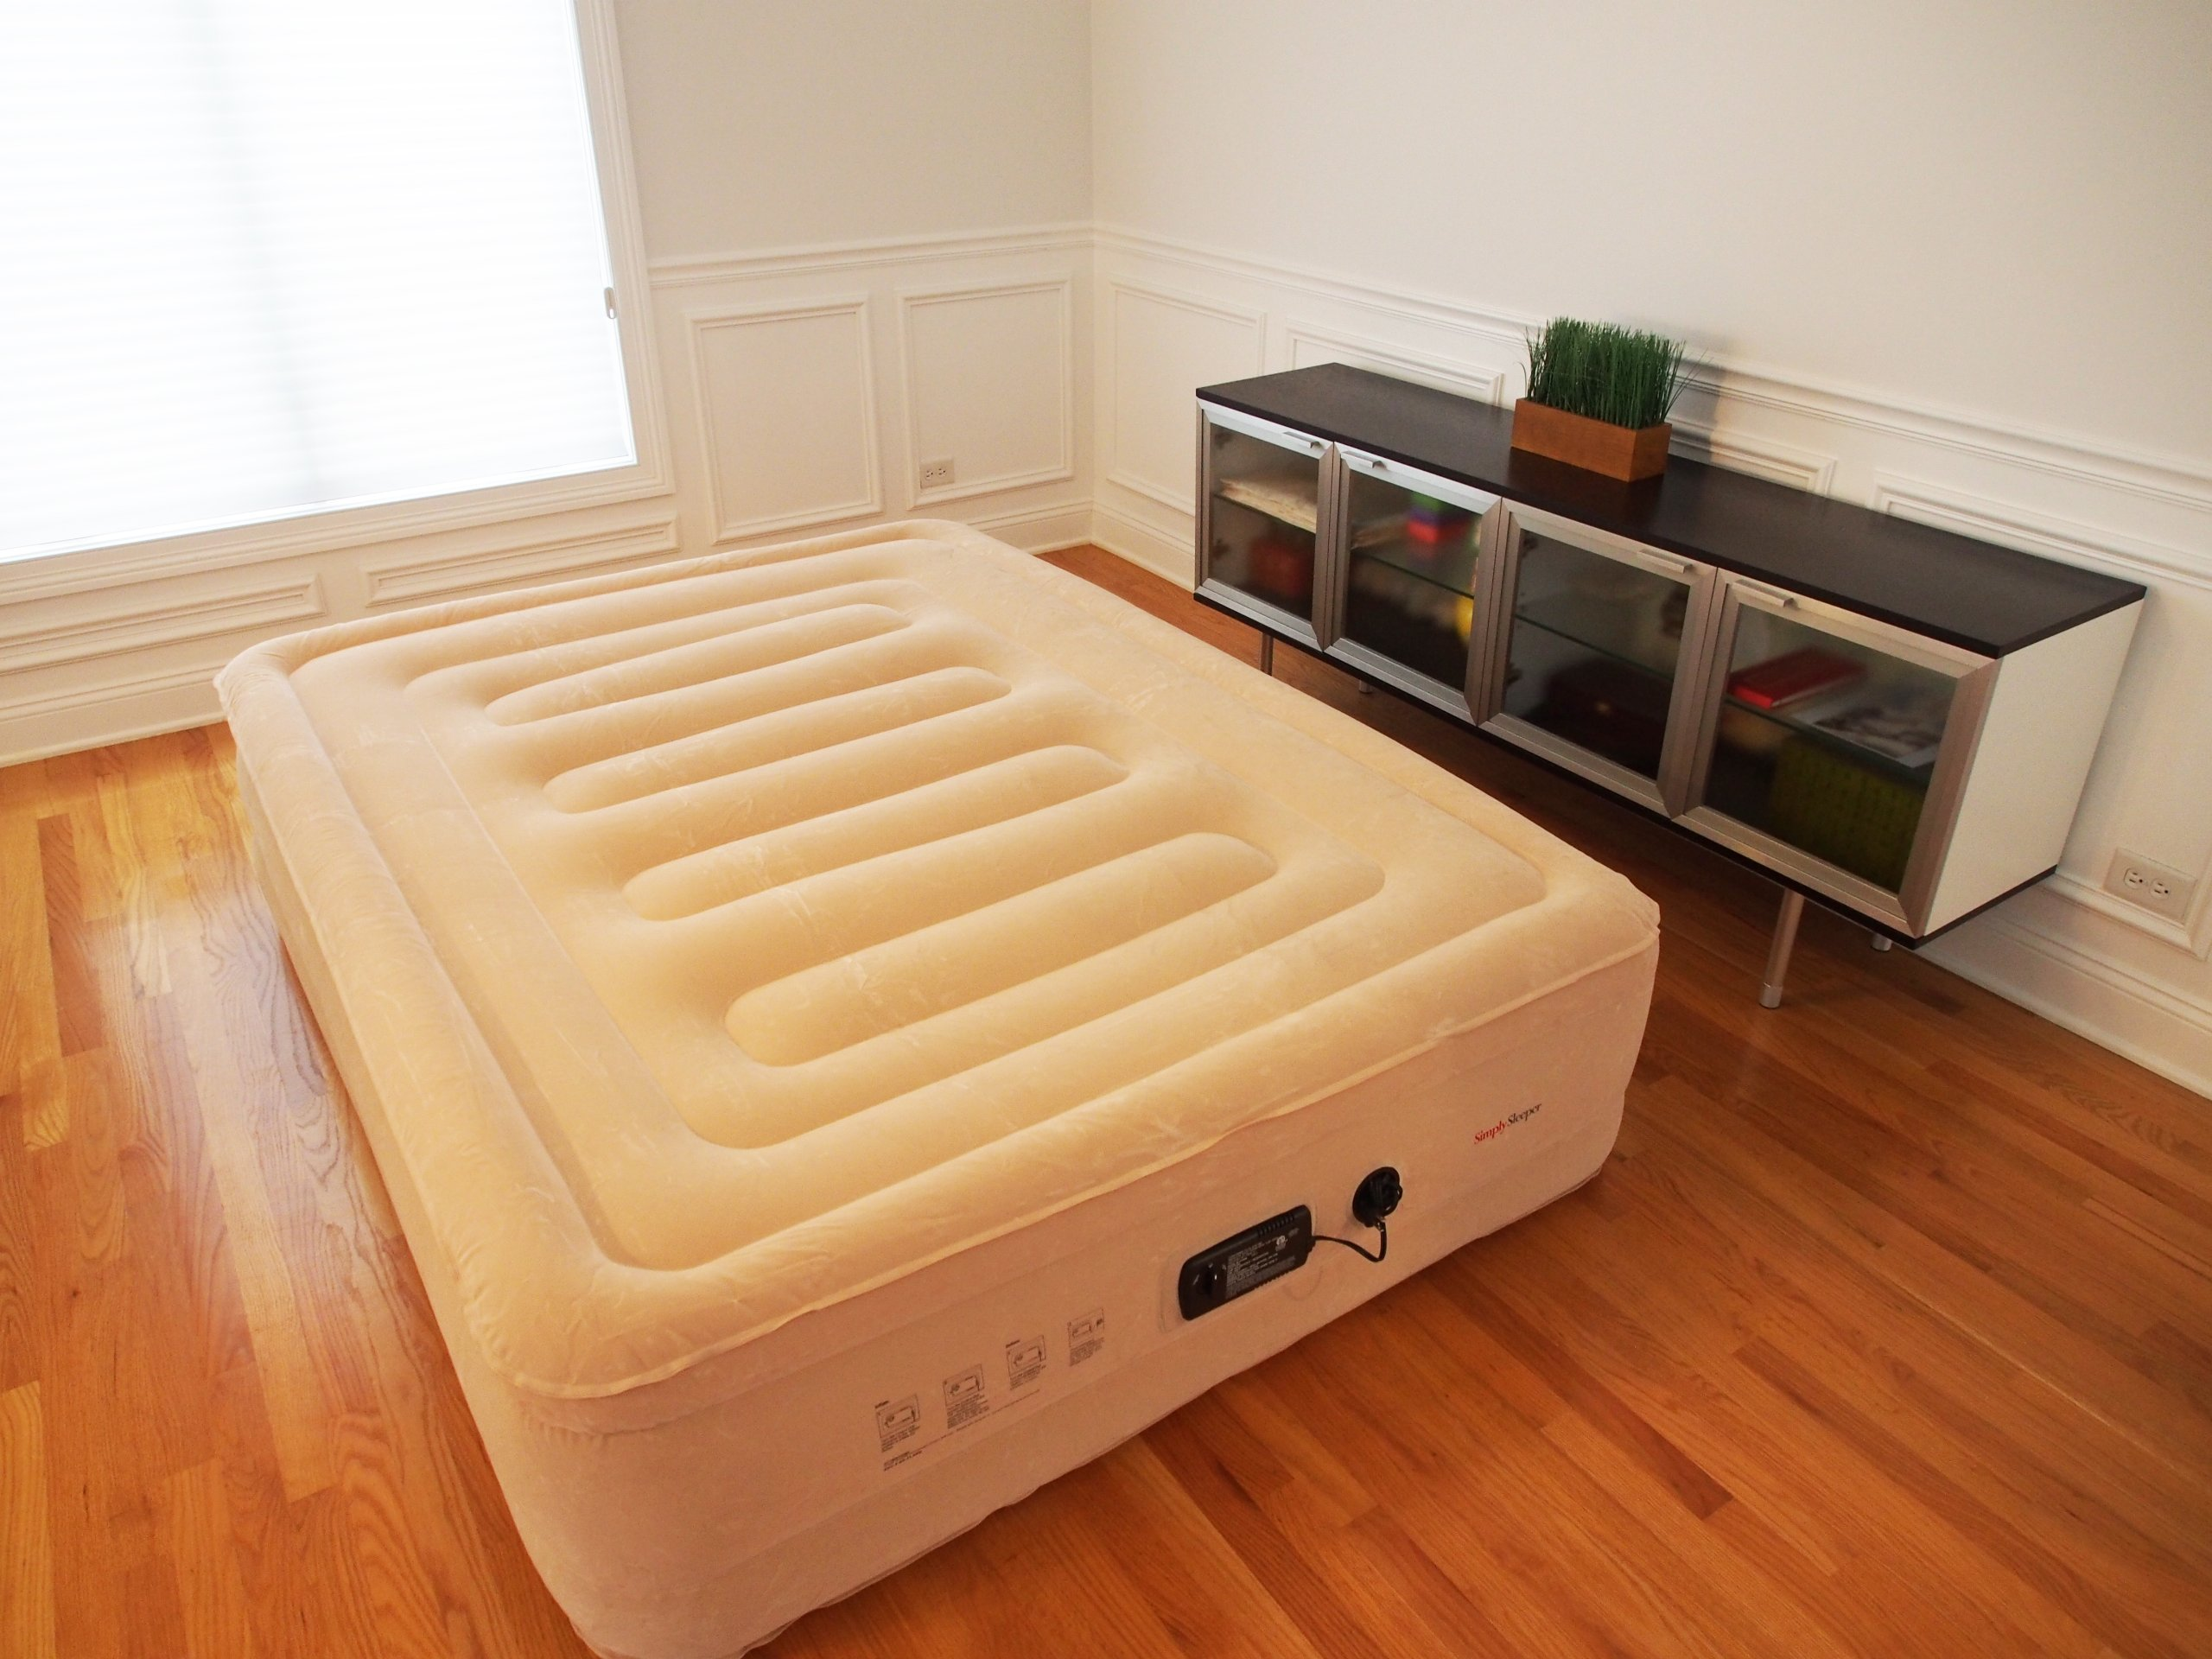 SimplySleeper FL-89Q Raised Inflatable Mattress w/ Flocked Top & Side Material - NEW! Built-in Auto-Stop Electric Pump and Sure Grip Bottom (Includes Travel bag and Repair Kit) by SimplySleeper (Image #9)